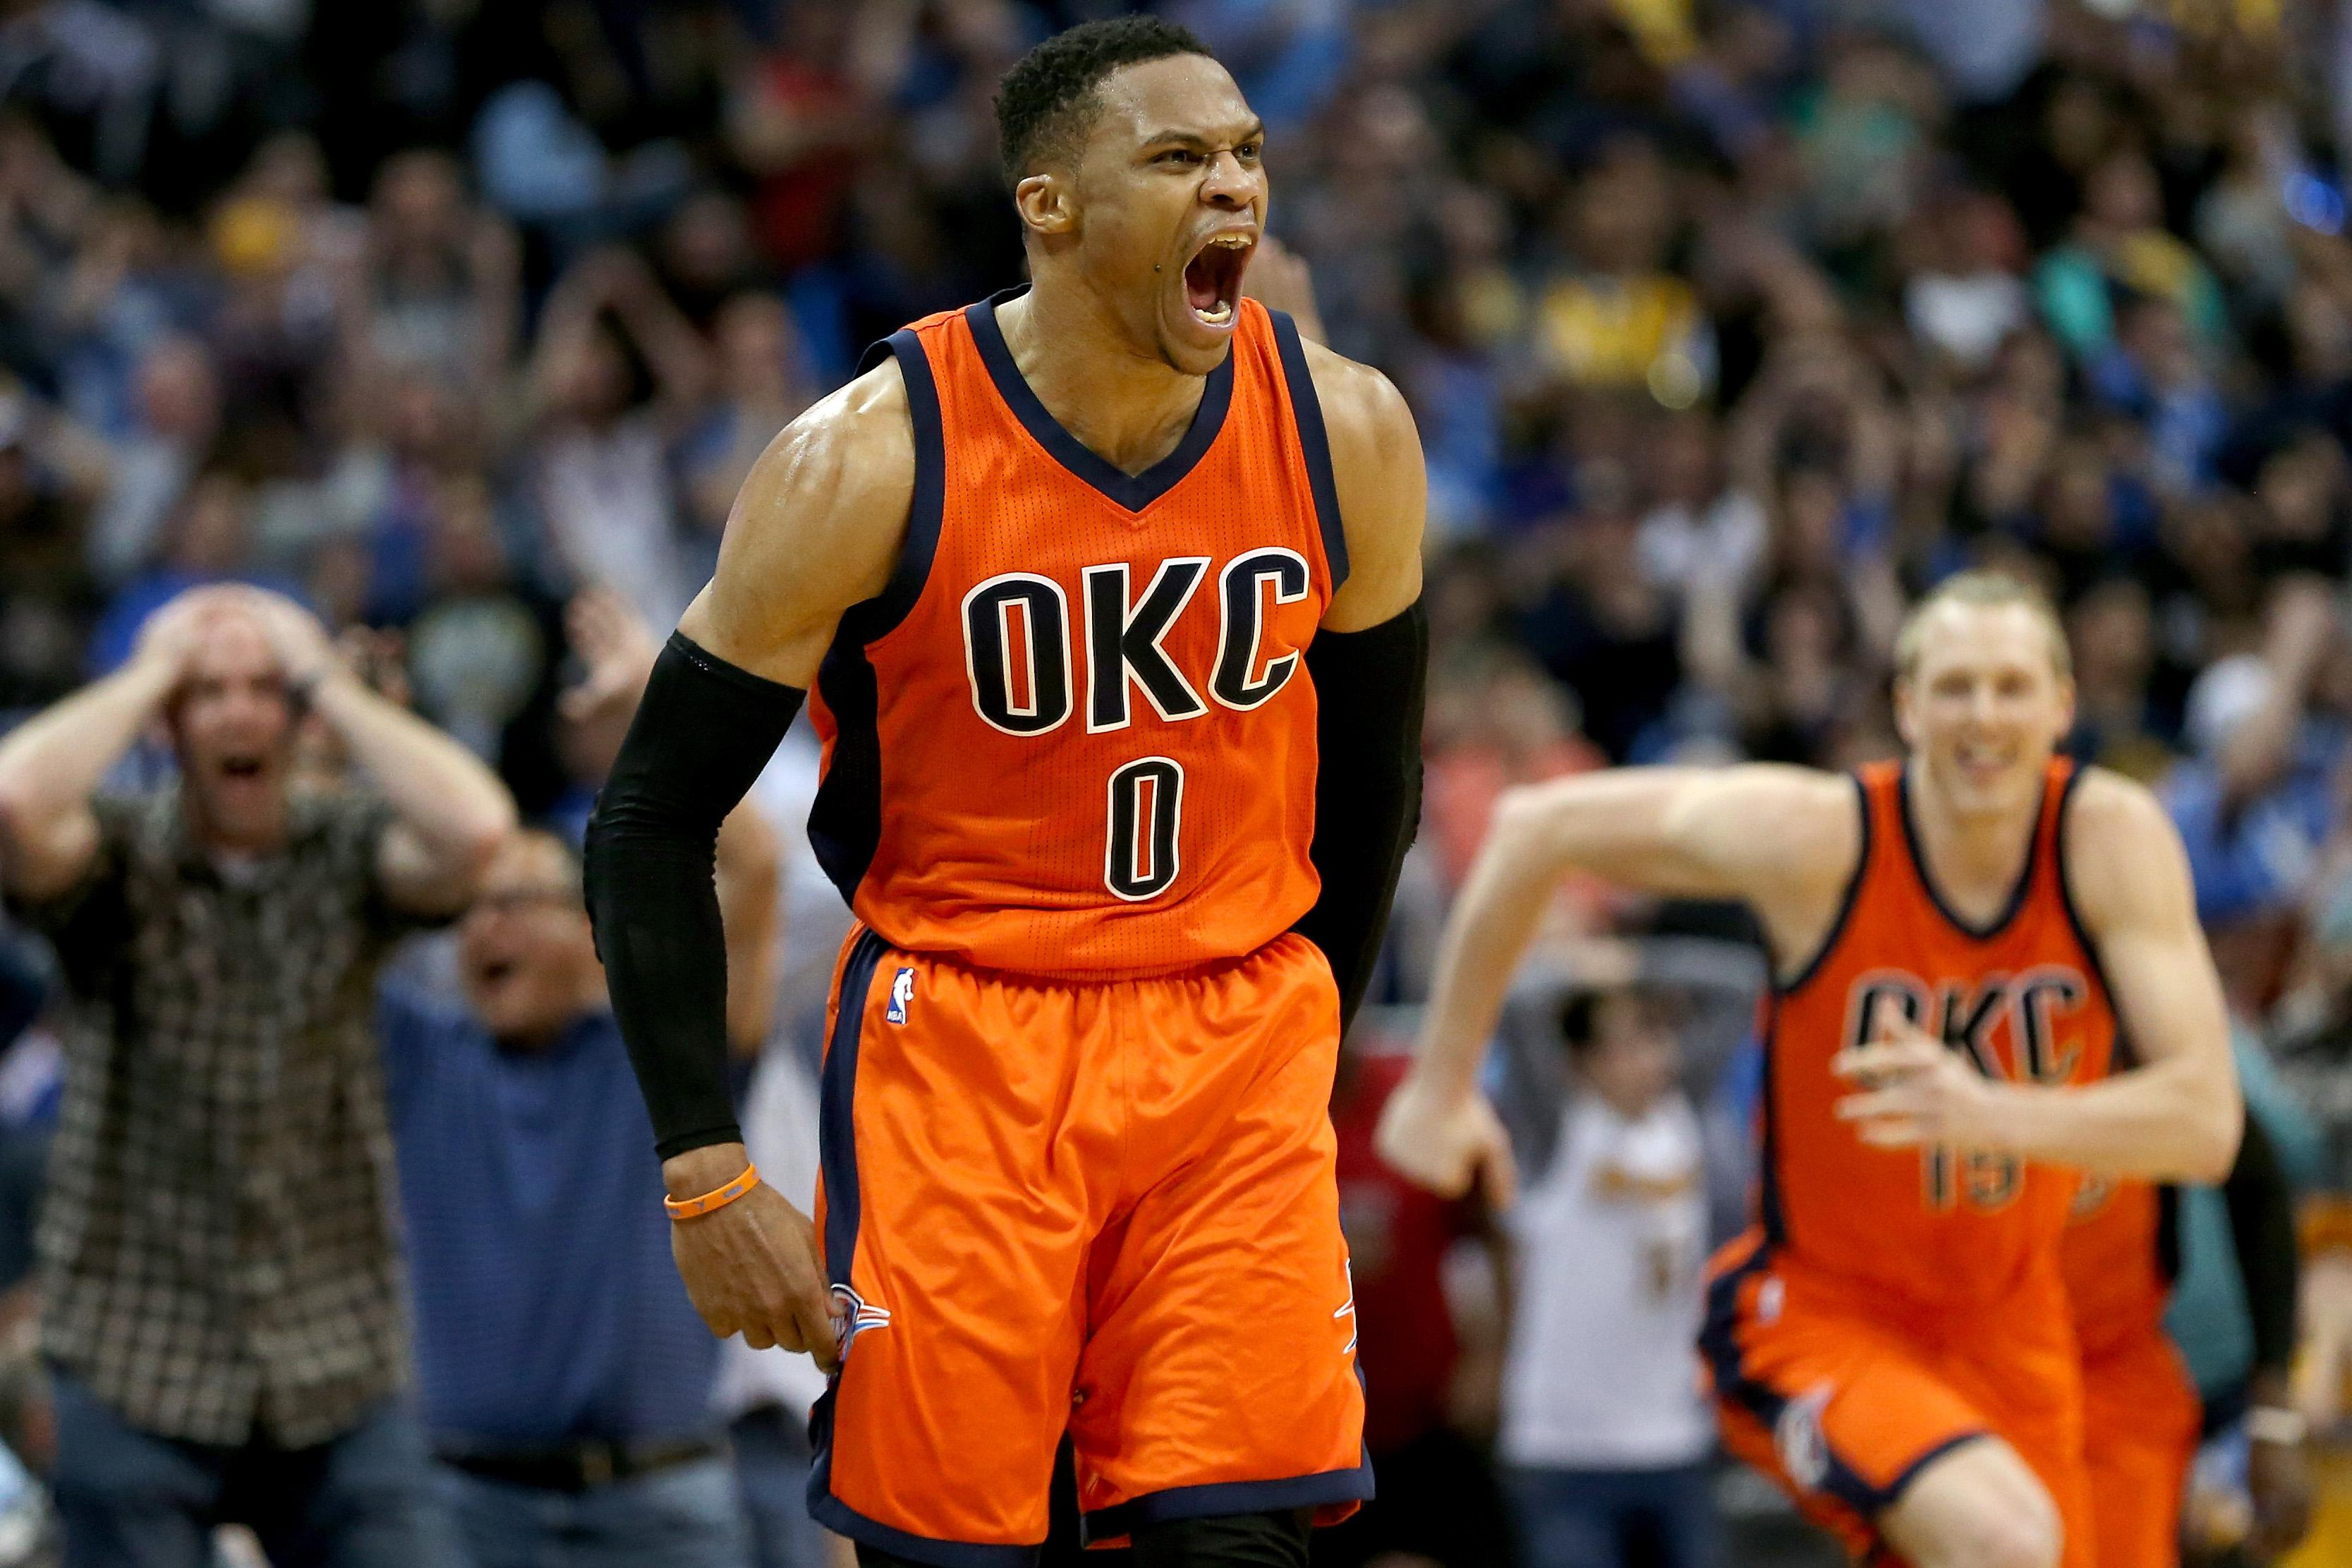 DENVER, CO - APRIL 09:  Russell Westbrook #0 of the Oklahoma City Thunder celebrates after scoring a game-winning, three-point shot at the buzzer against the Denver Nuggets at Pepsi Center on April 9, 2017 in Denver, Colorado. NOTE TO USER: User expressly acknowledges and agrees that , by downloading and or using this photograph, User is consenting to the terms and conditions of the Getty Images License Agreement.  (Photo by Matthew Stockman/Getty Images)